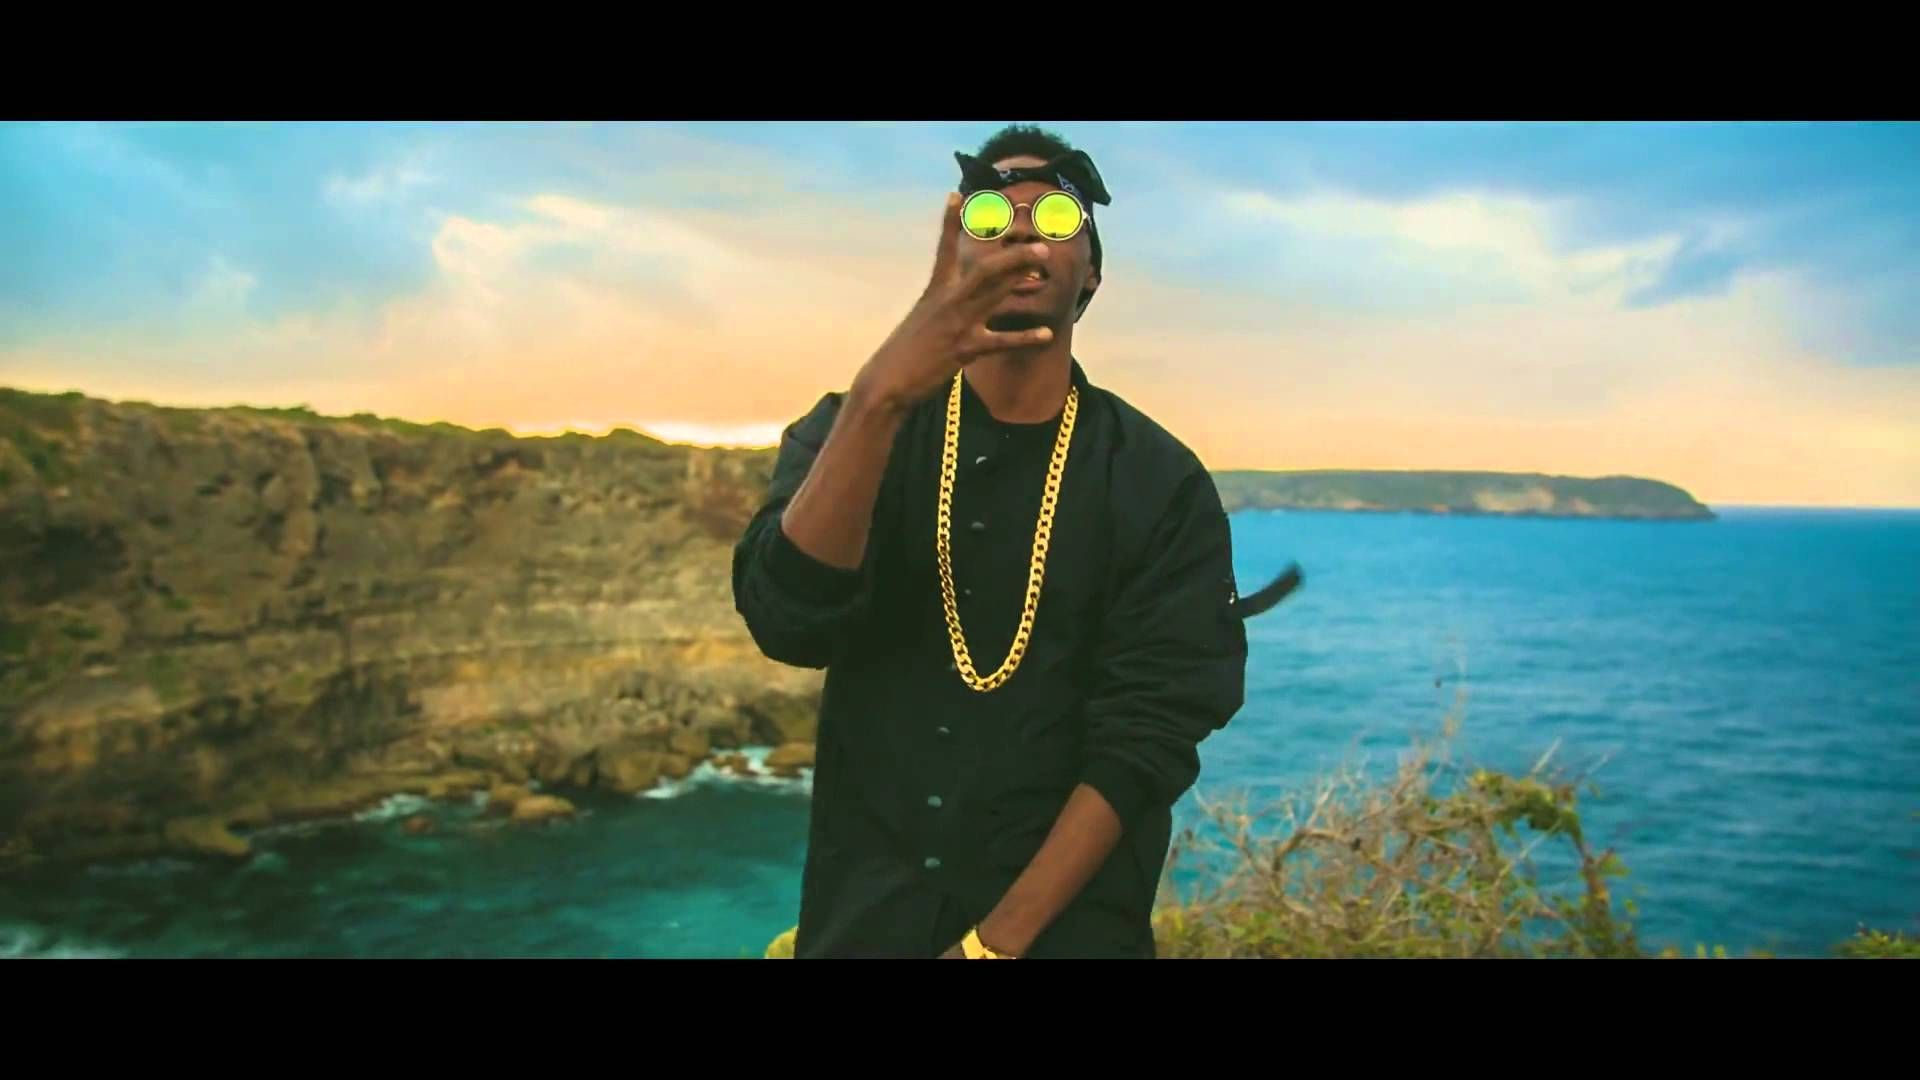 Wendyyy - Dekontwole [Official Music Video] Music Video Posted on http://musicvideopalace.com/wendyyy-dekontwole-official-music-video/